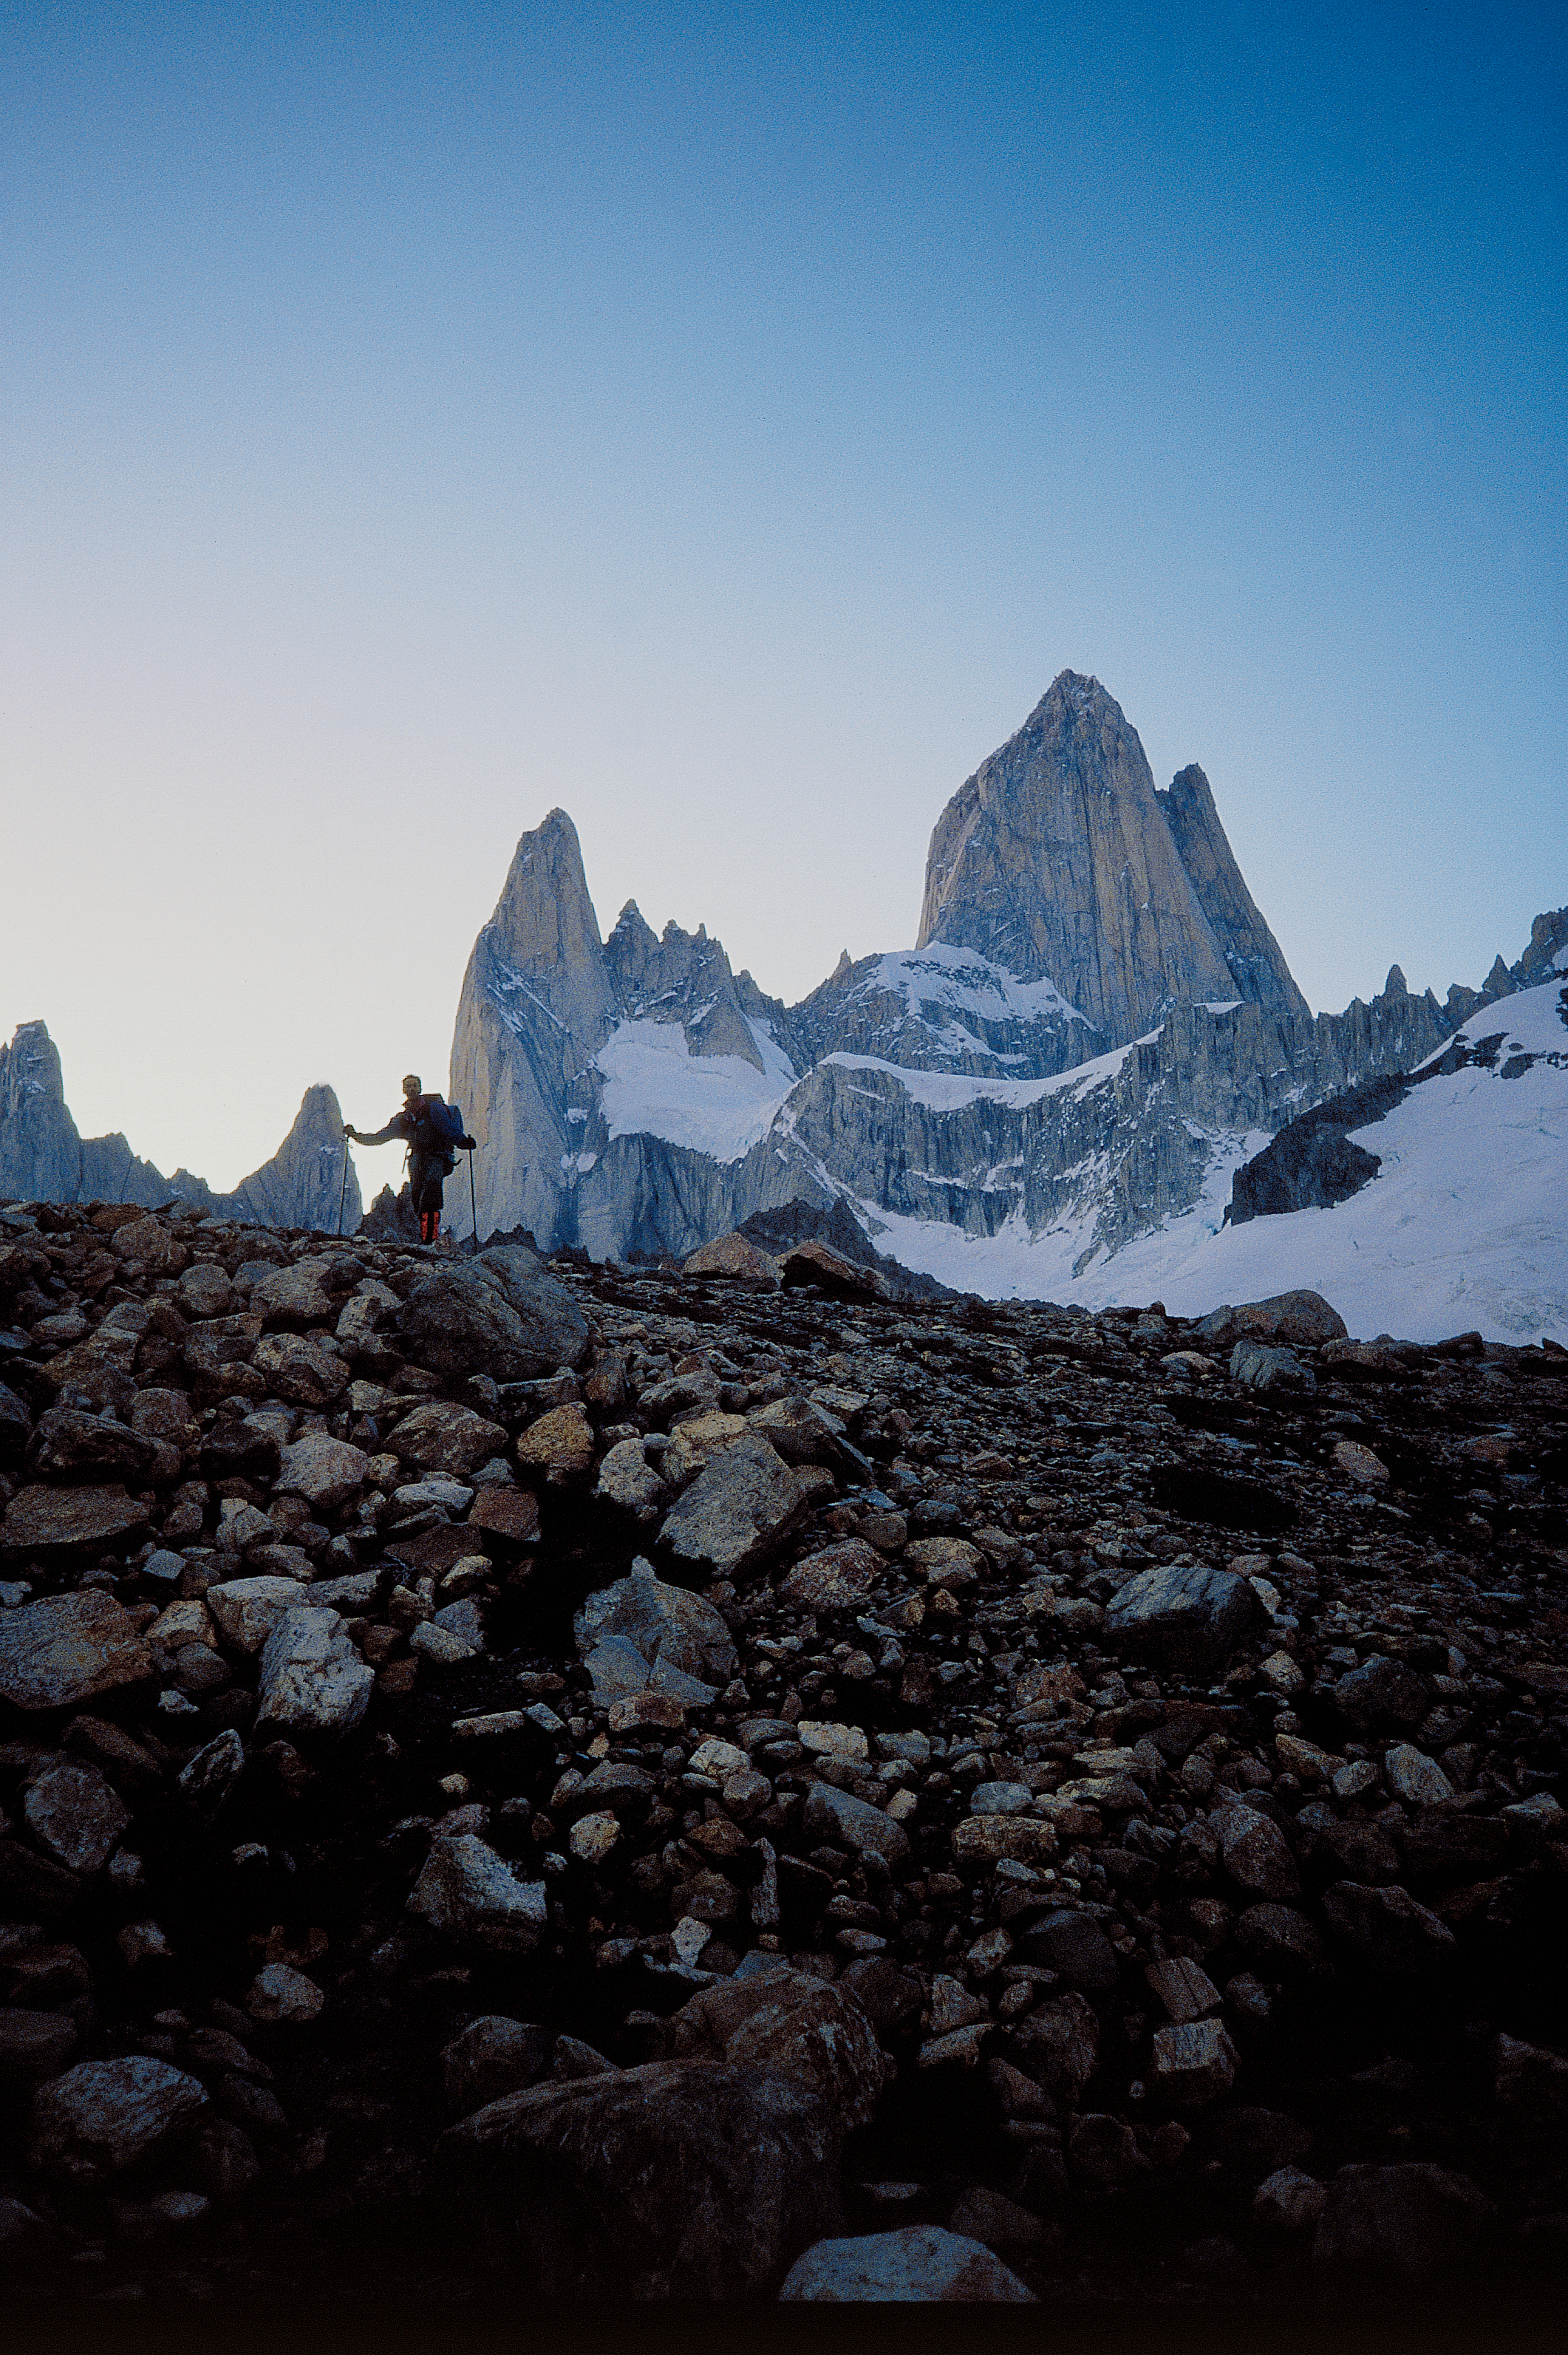 Beneath the awesome Fitz Roy after our ascent of the north pillar (right skyline).